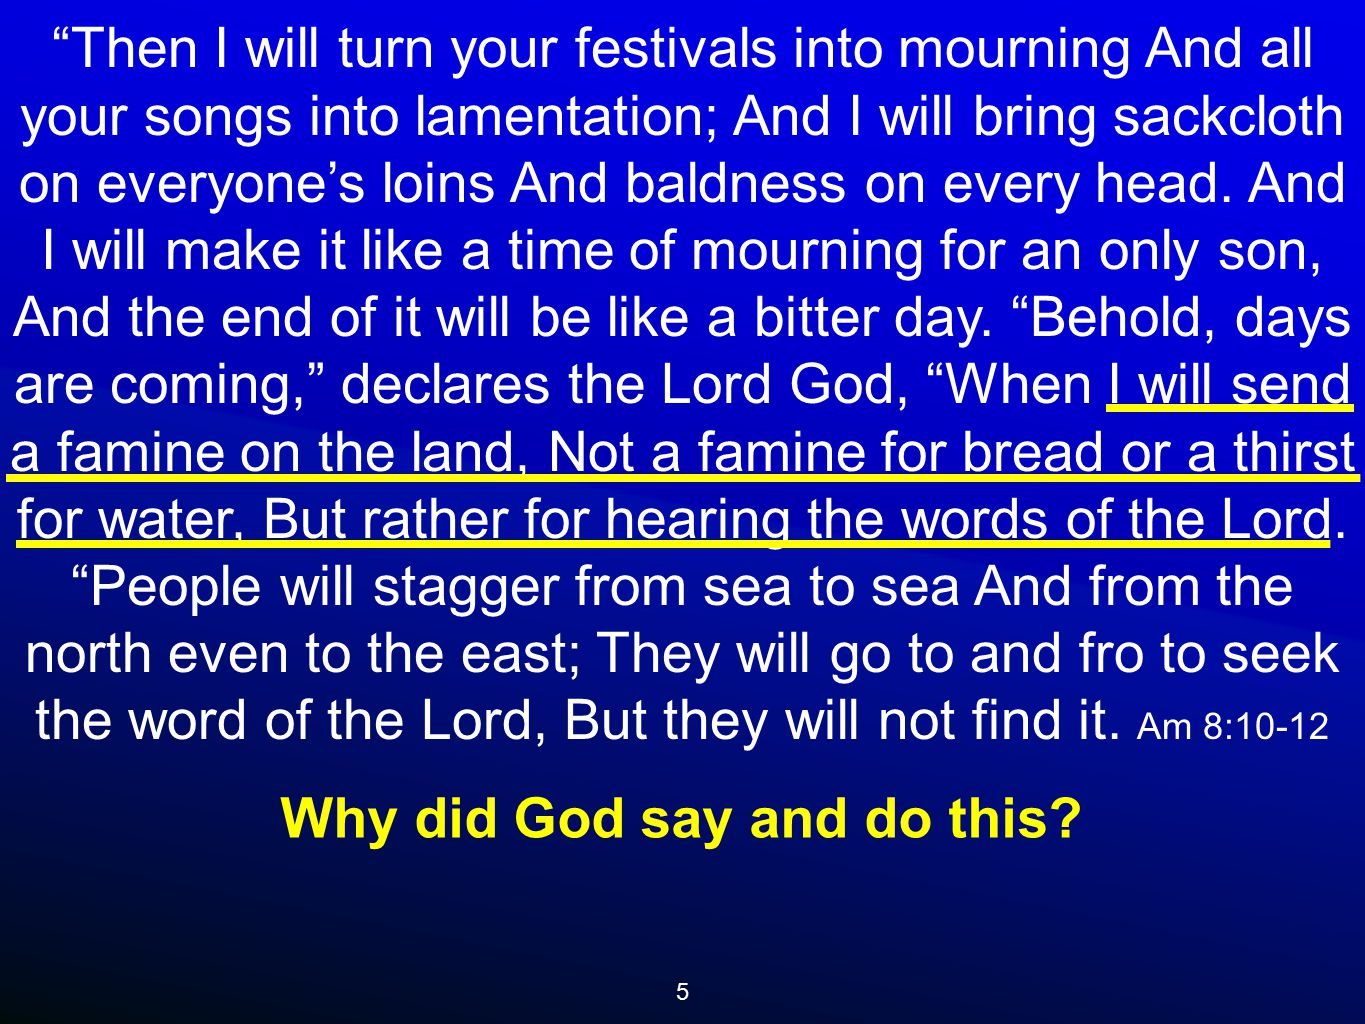 5 Then I will turn your festivals into mourning And all your songs into lamentation; And I will bring sackcloth on everyone's loins And baldness on every head.